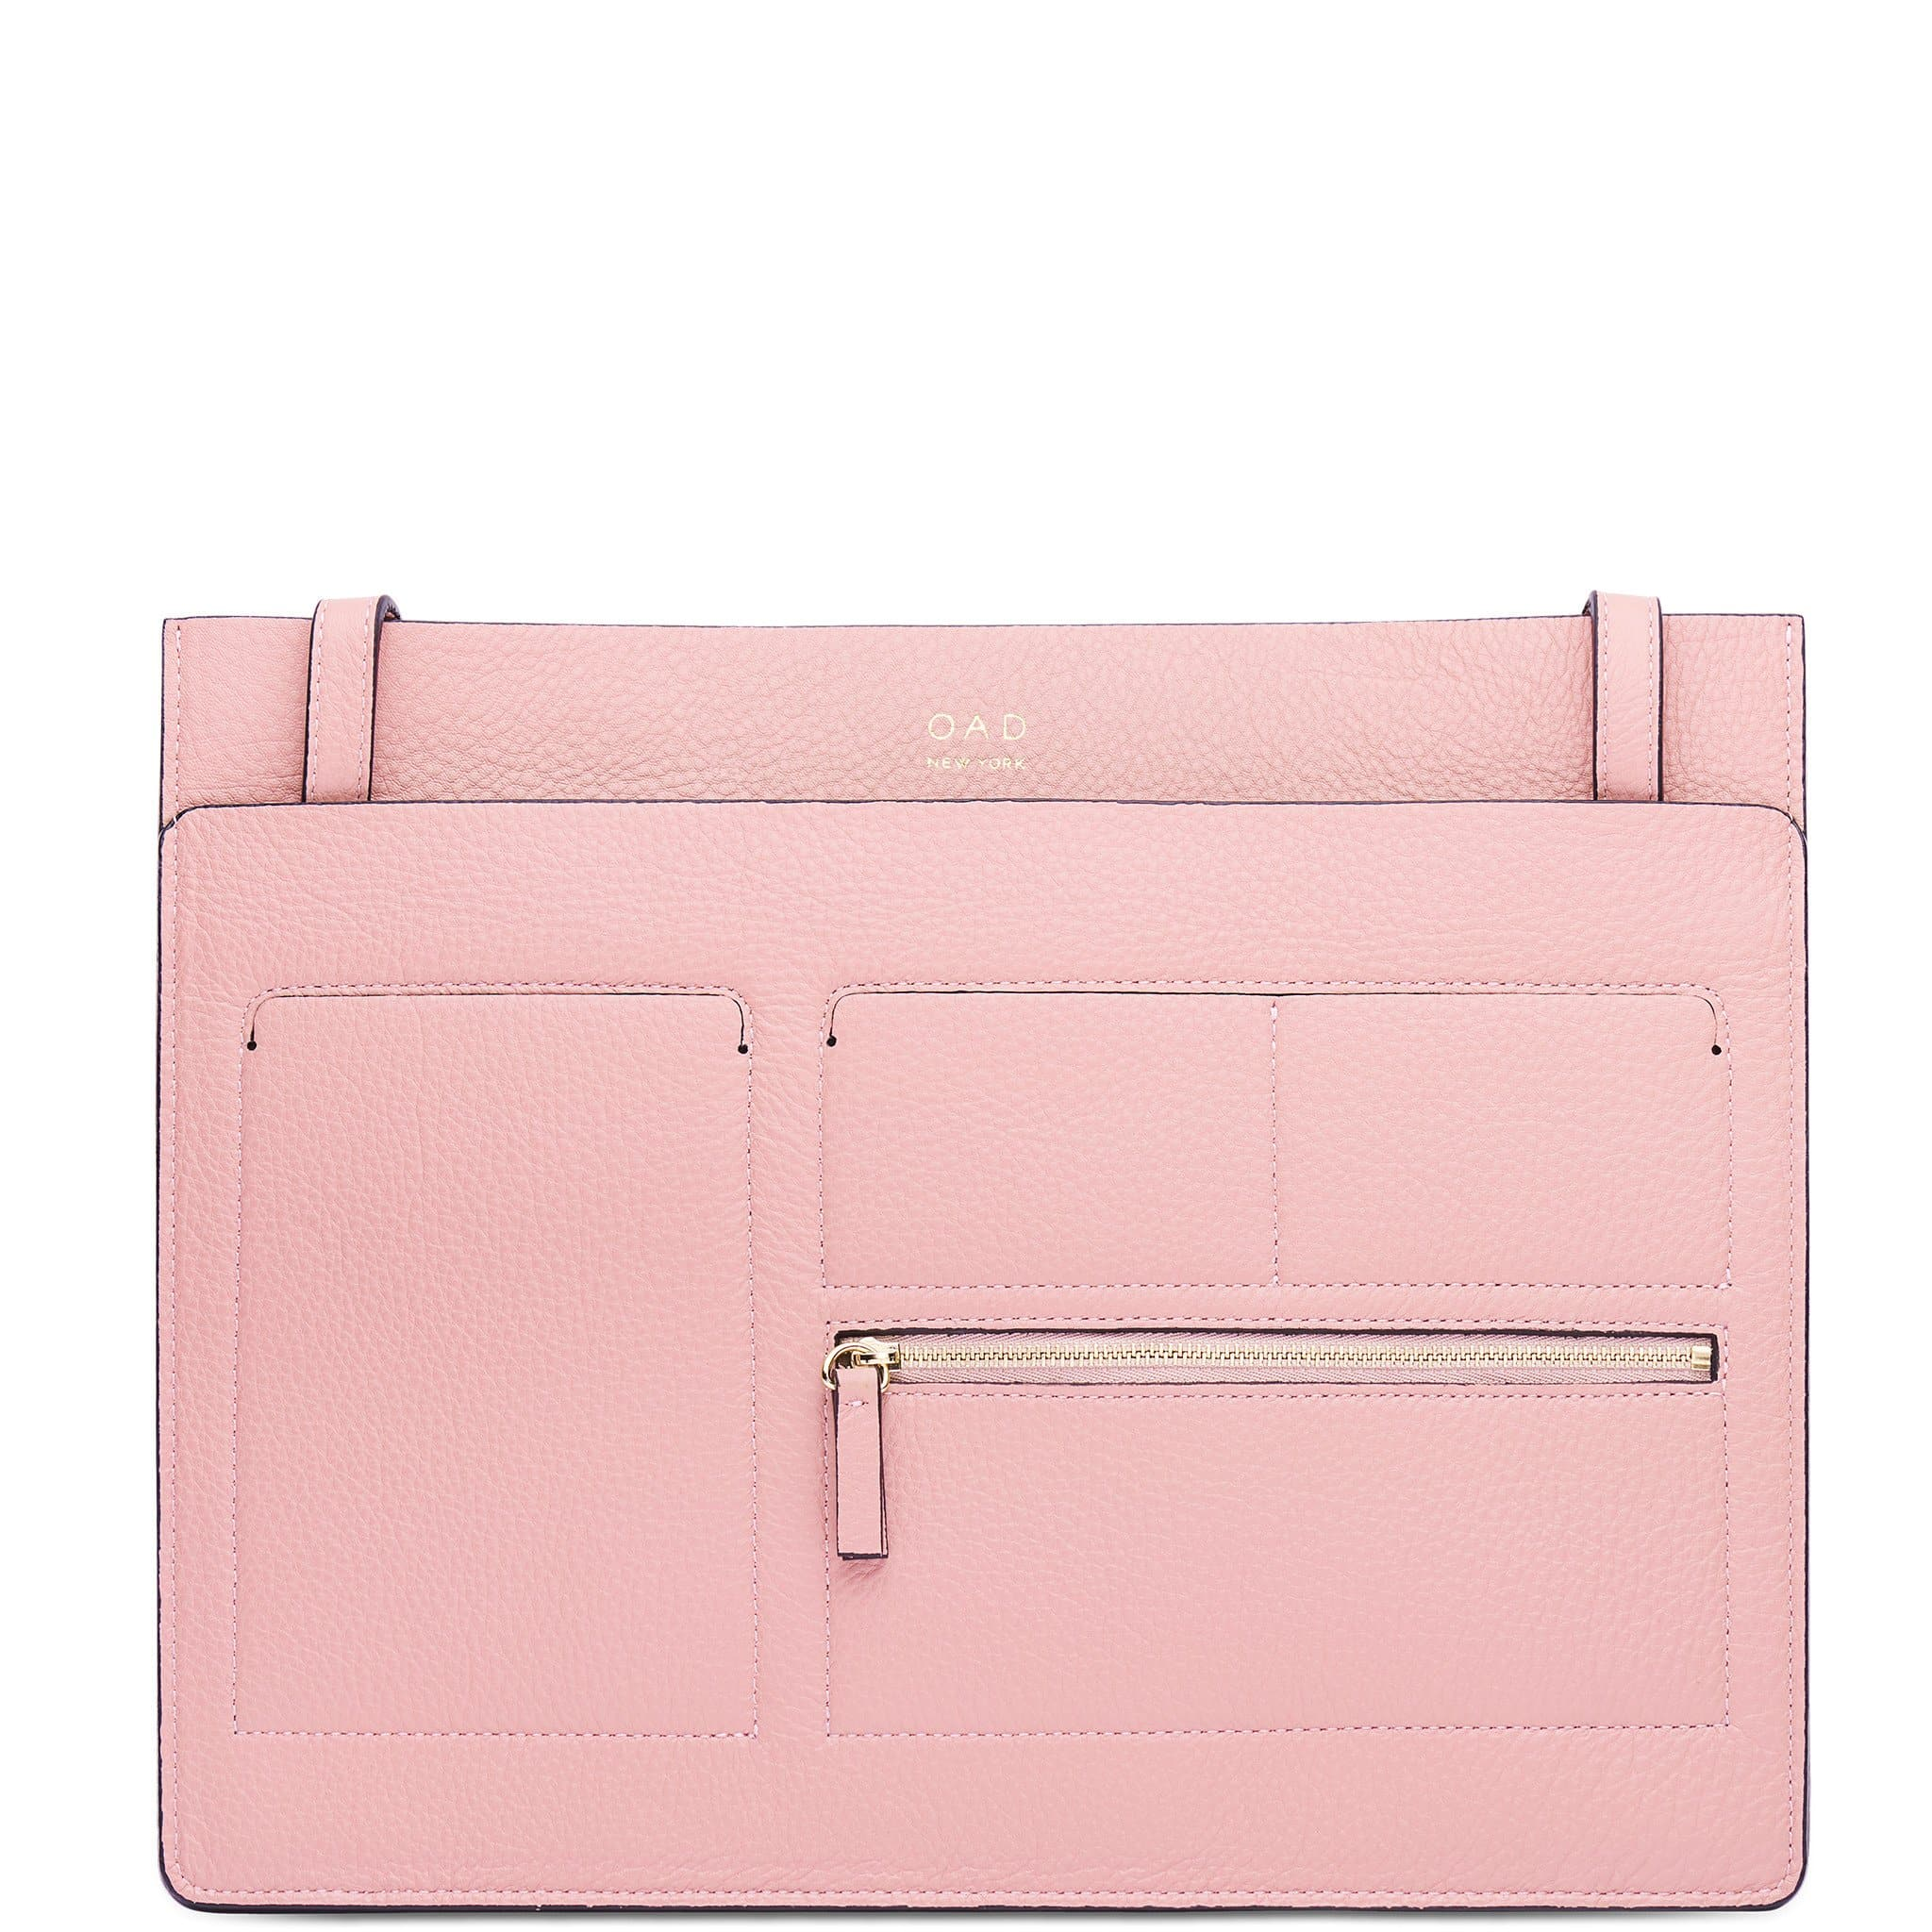 Kit Tote - Rose Pink